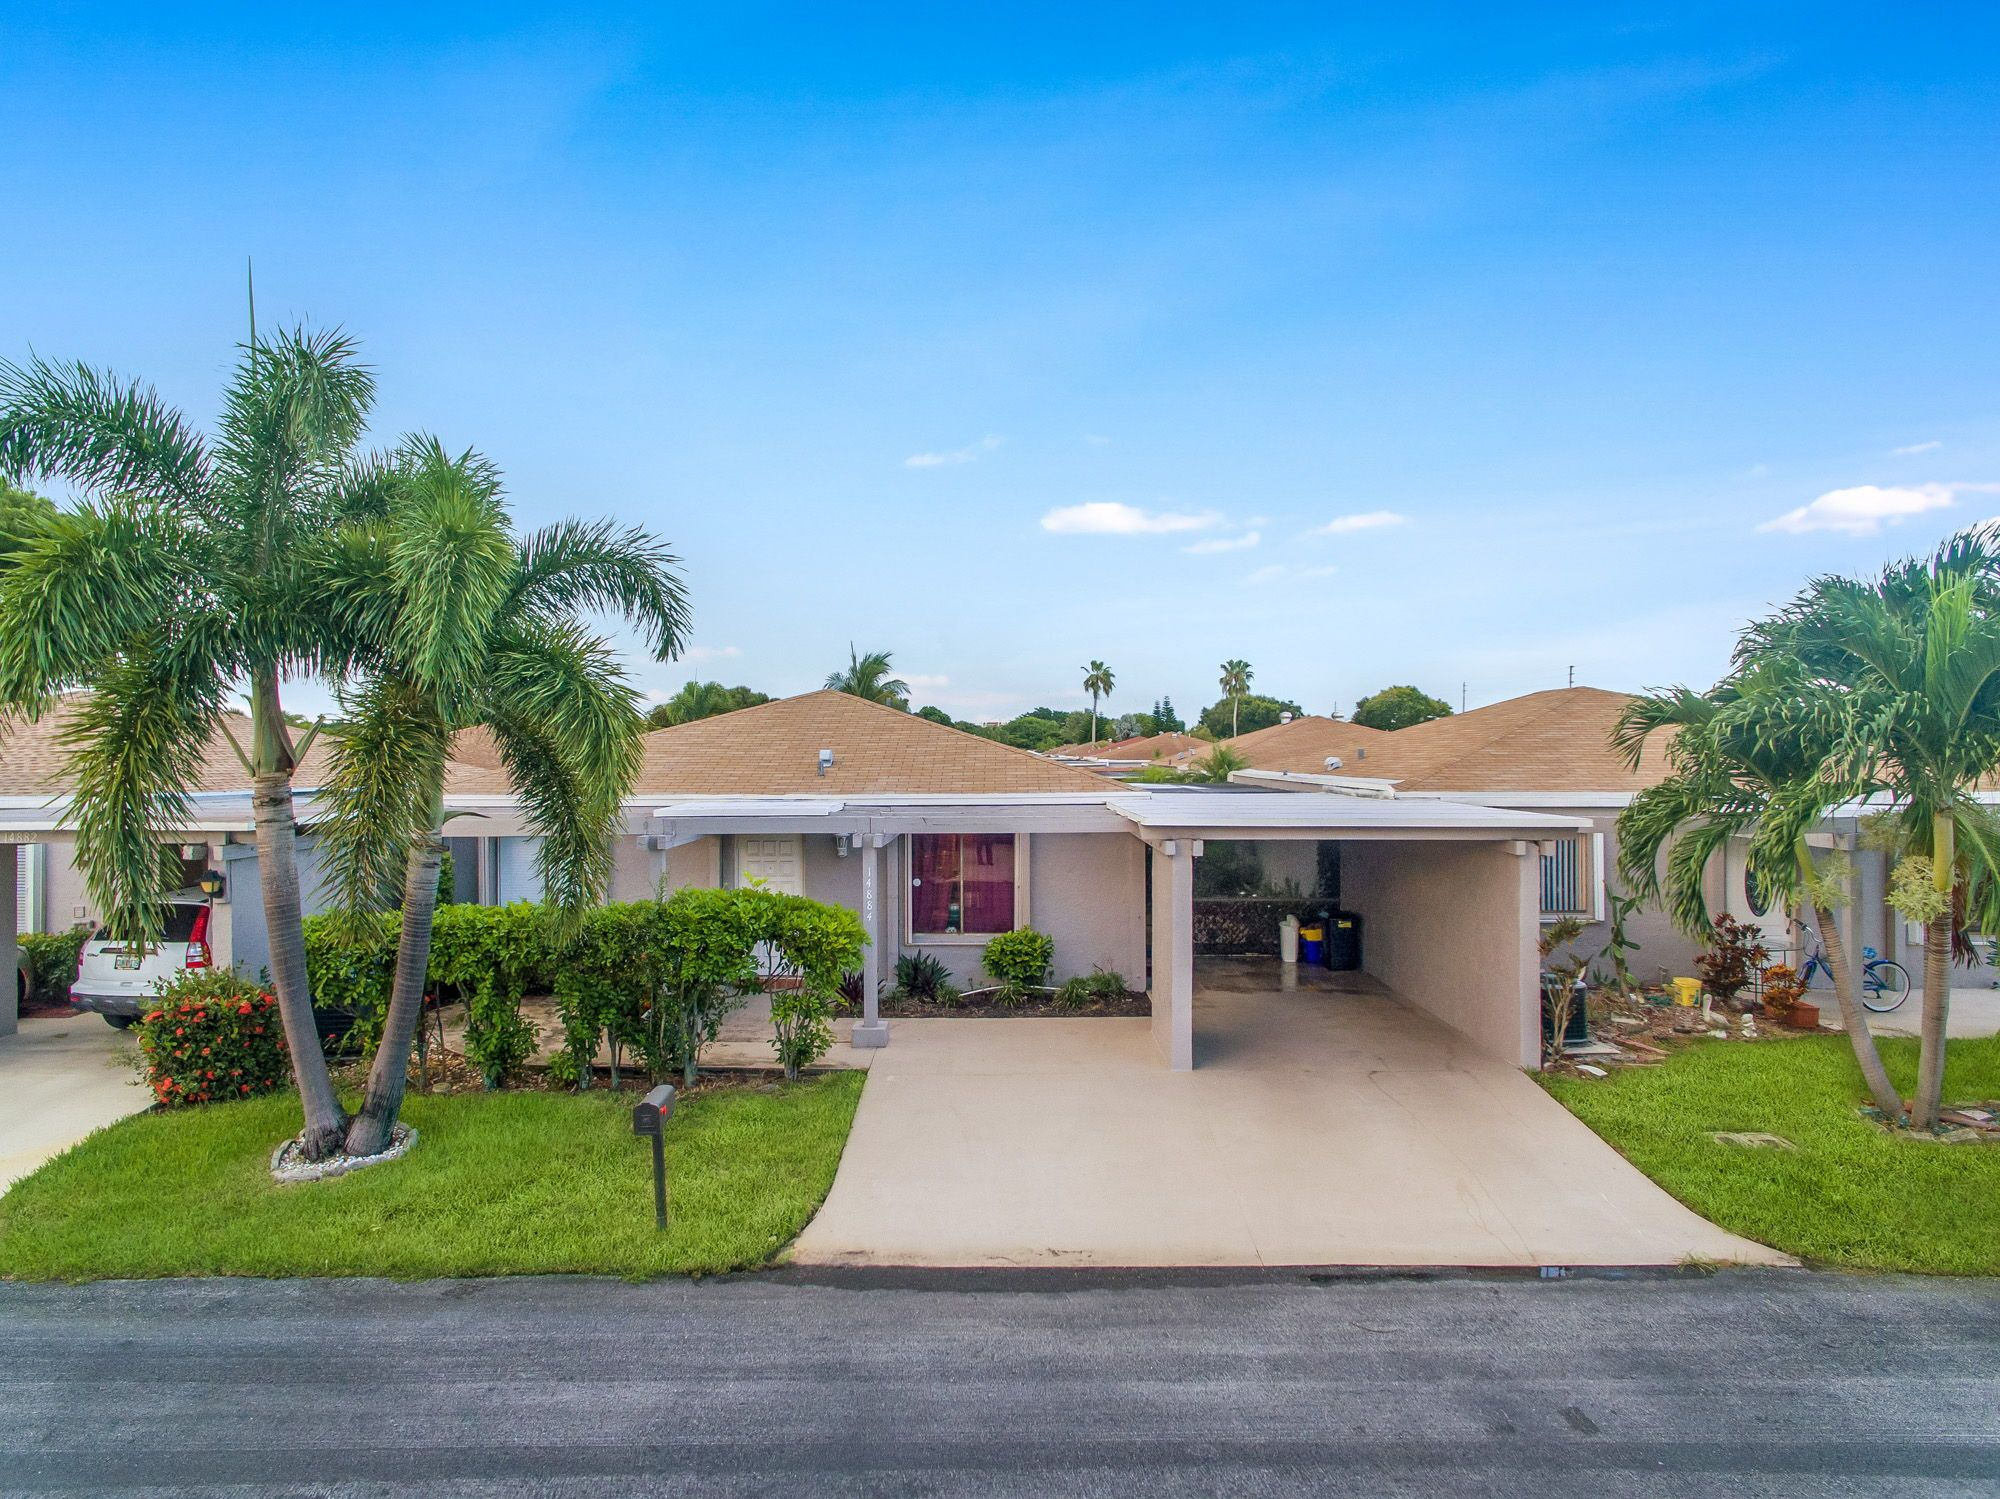 Beautiful Bright Spacious 1 Story Home Located In The Quiet Community Of Camelot Village Floridahomes Inte Delray Beach Apartment Garden Screened In Patio